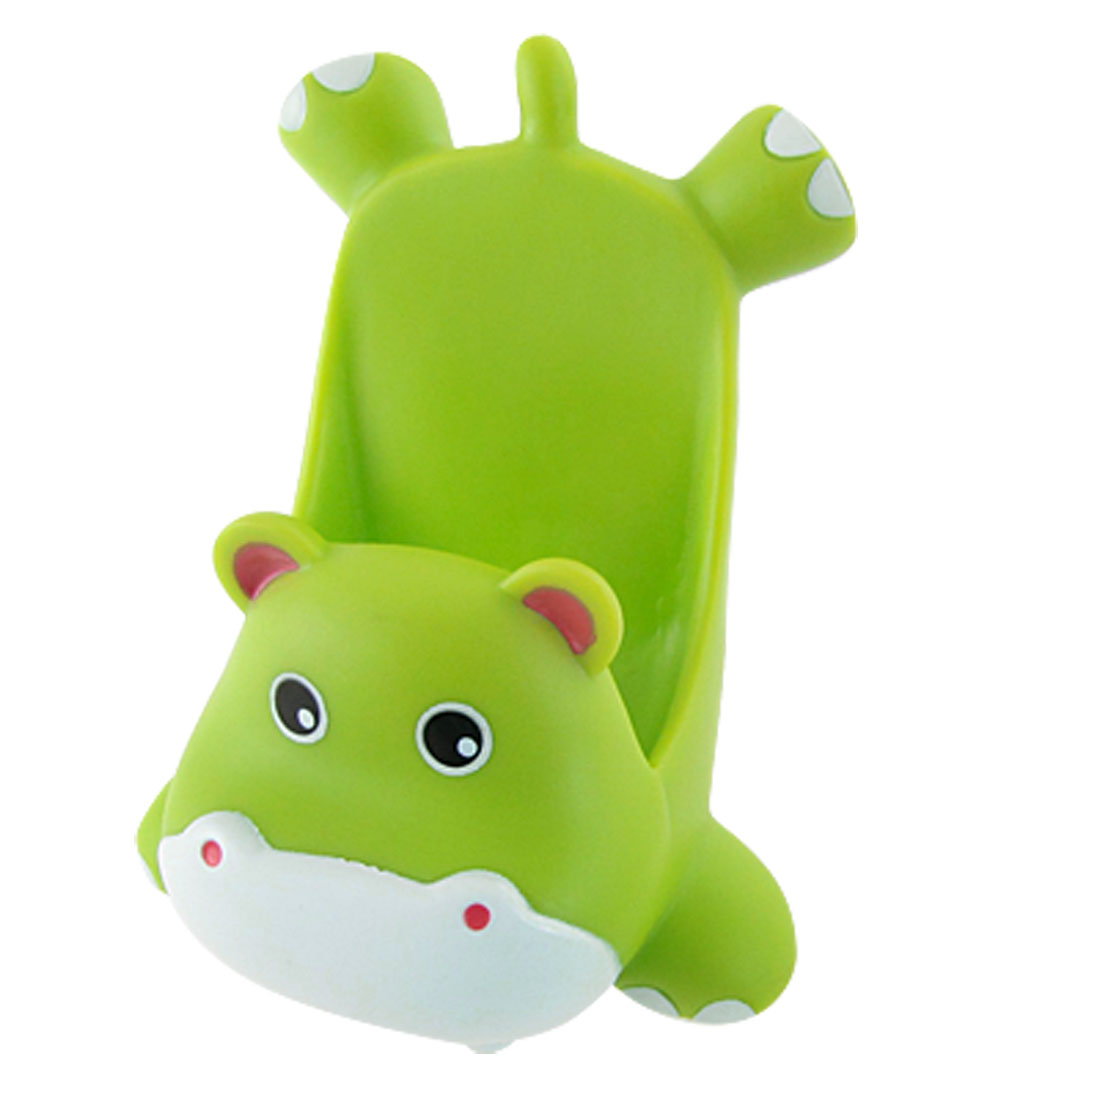 Mobile Phone Green Plastic Cartoon Hippo Shape Stand Holder